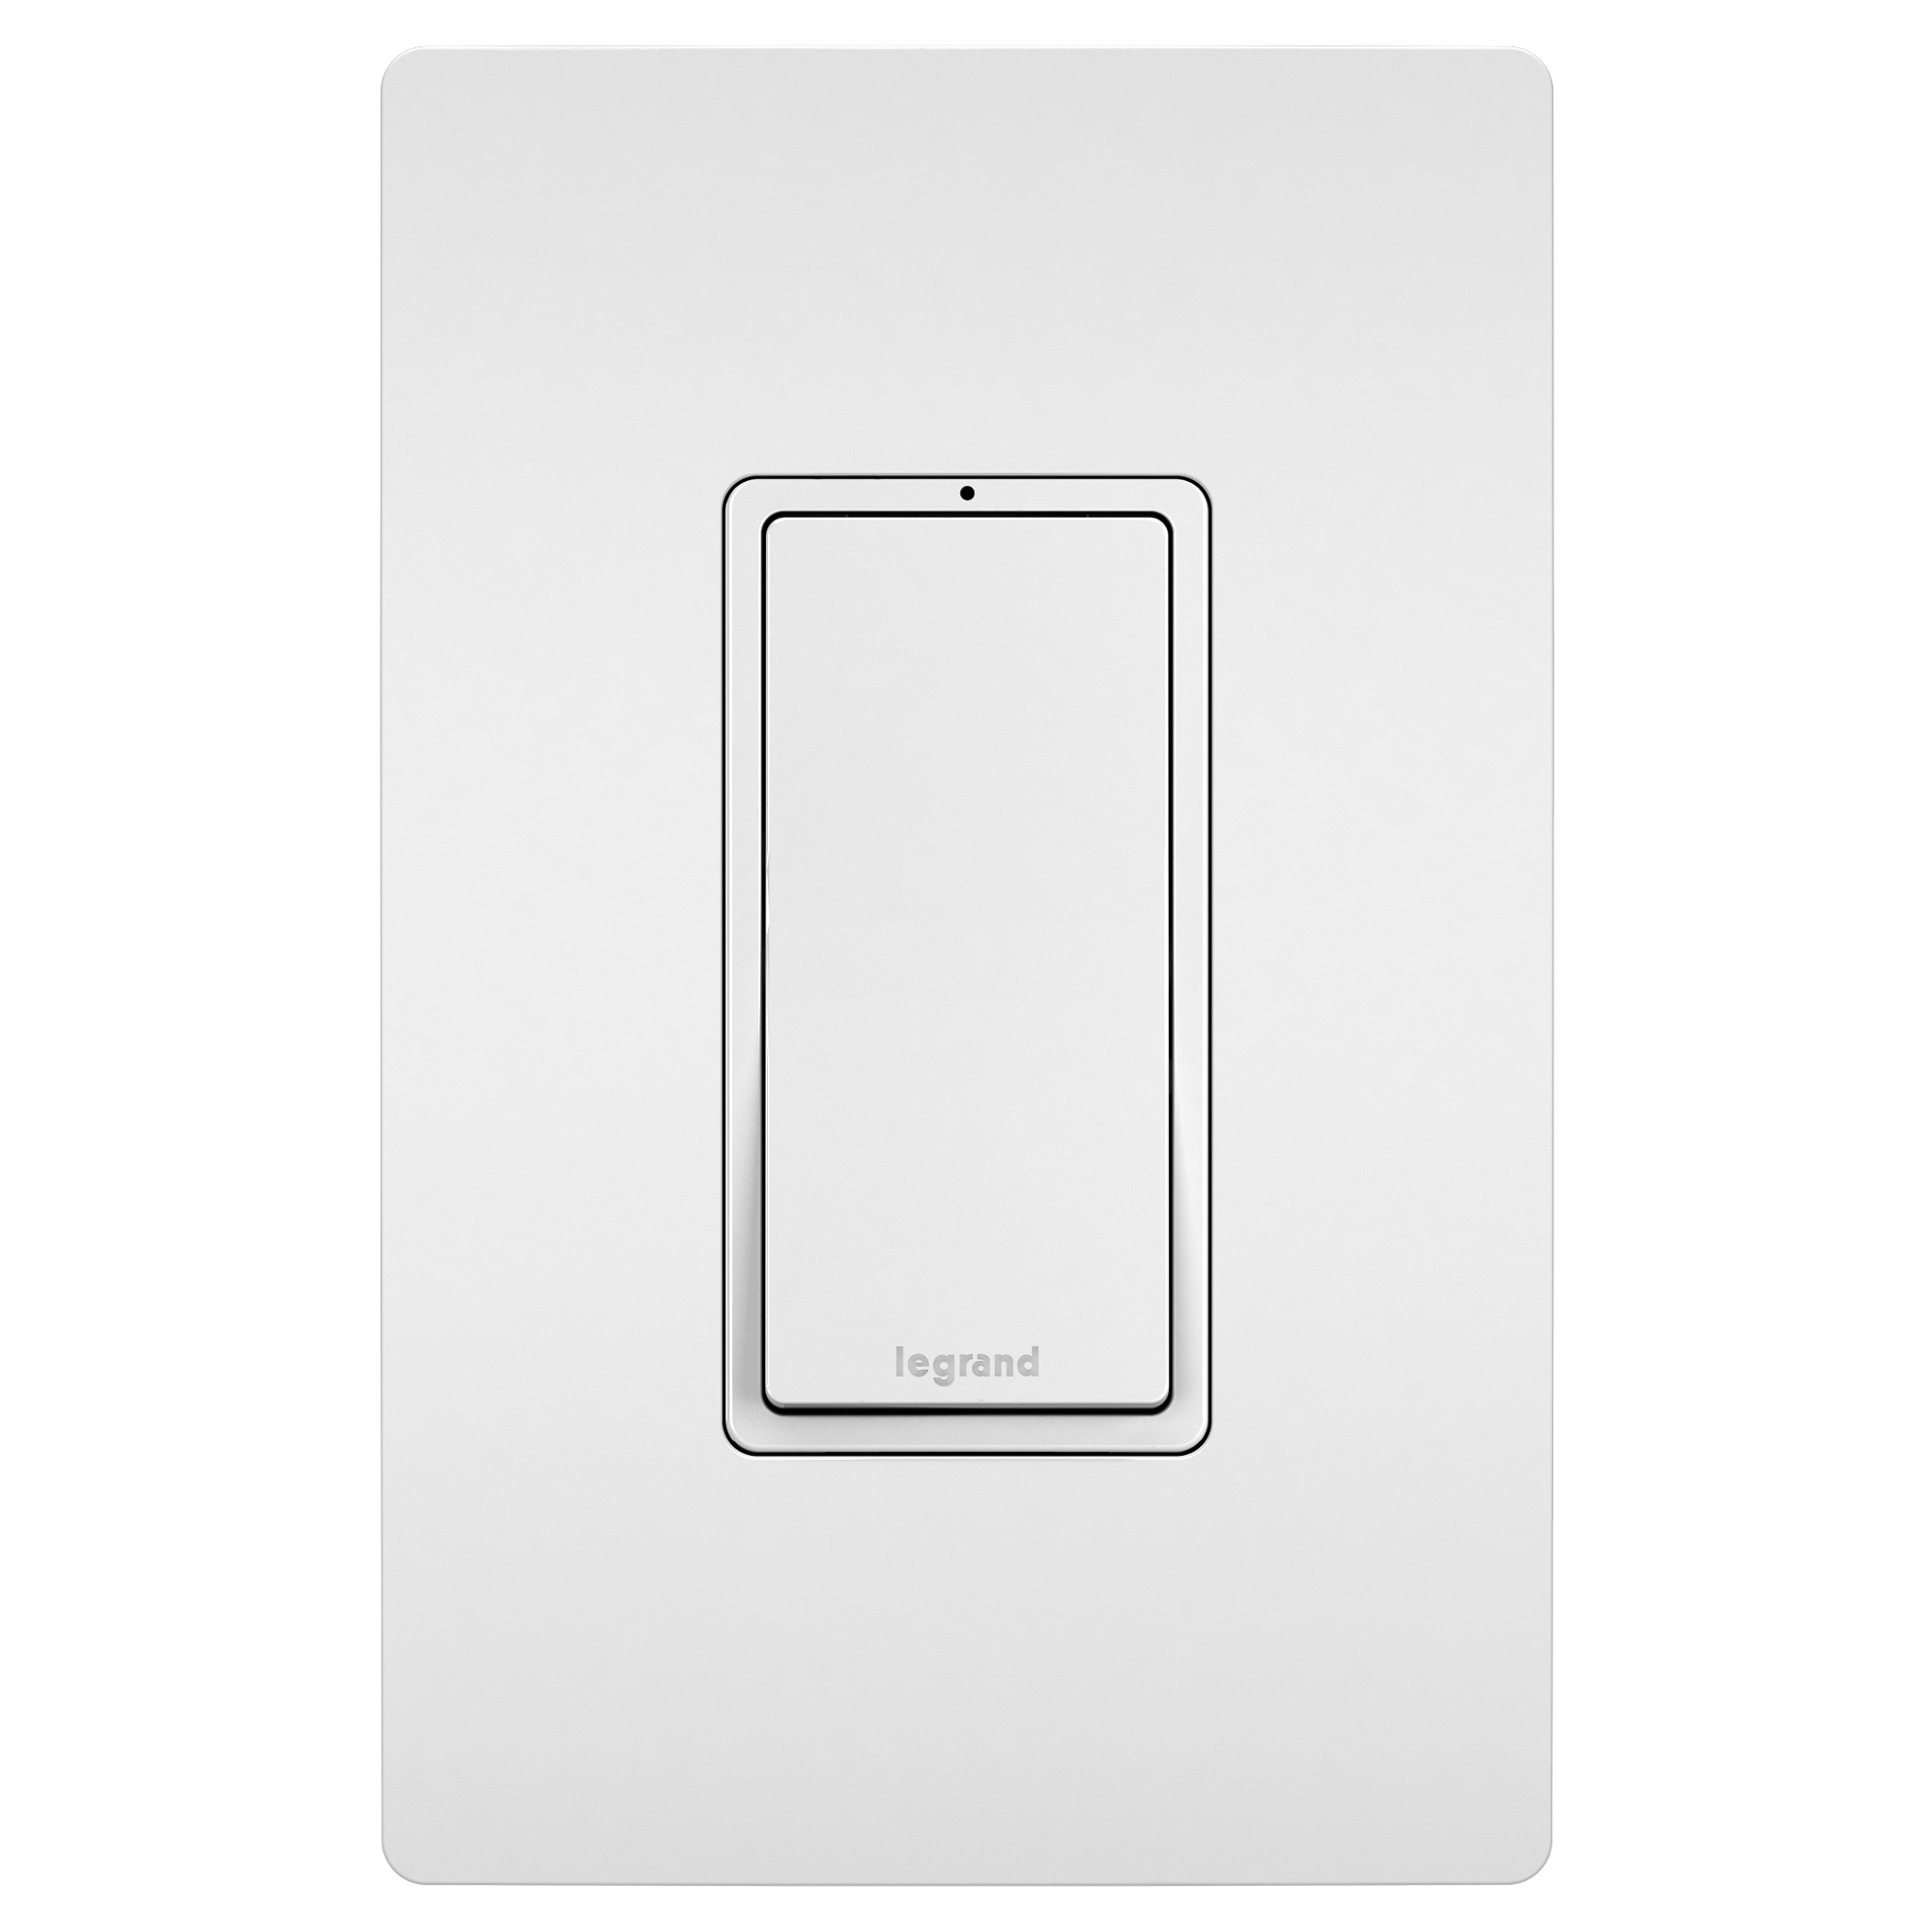 15 Amp Single Pole Lighted Switch by Legrand Radiant | TM870WSL